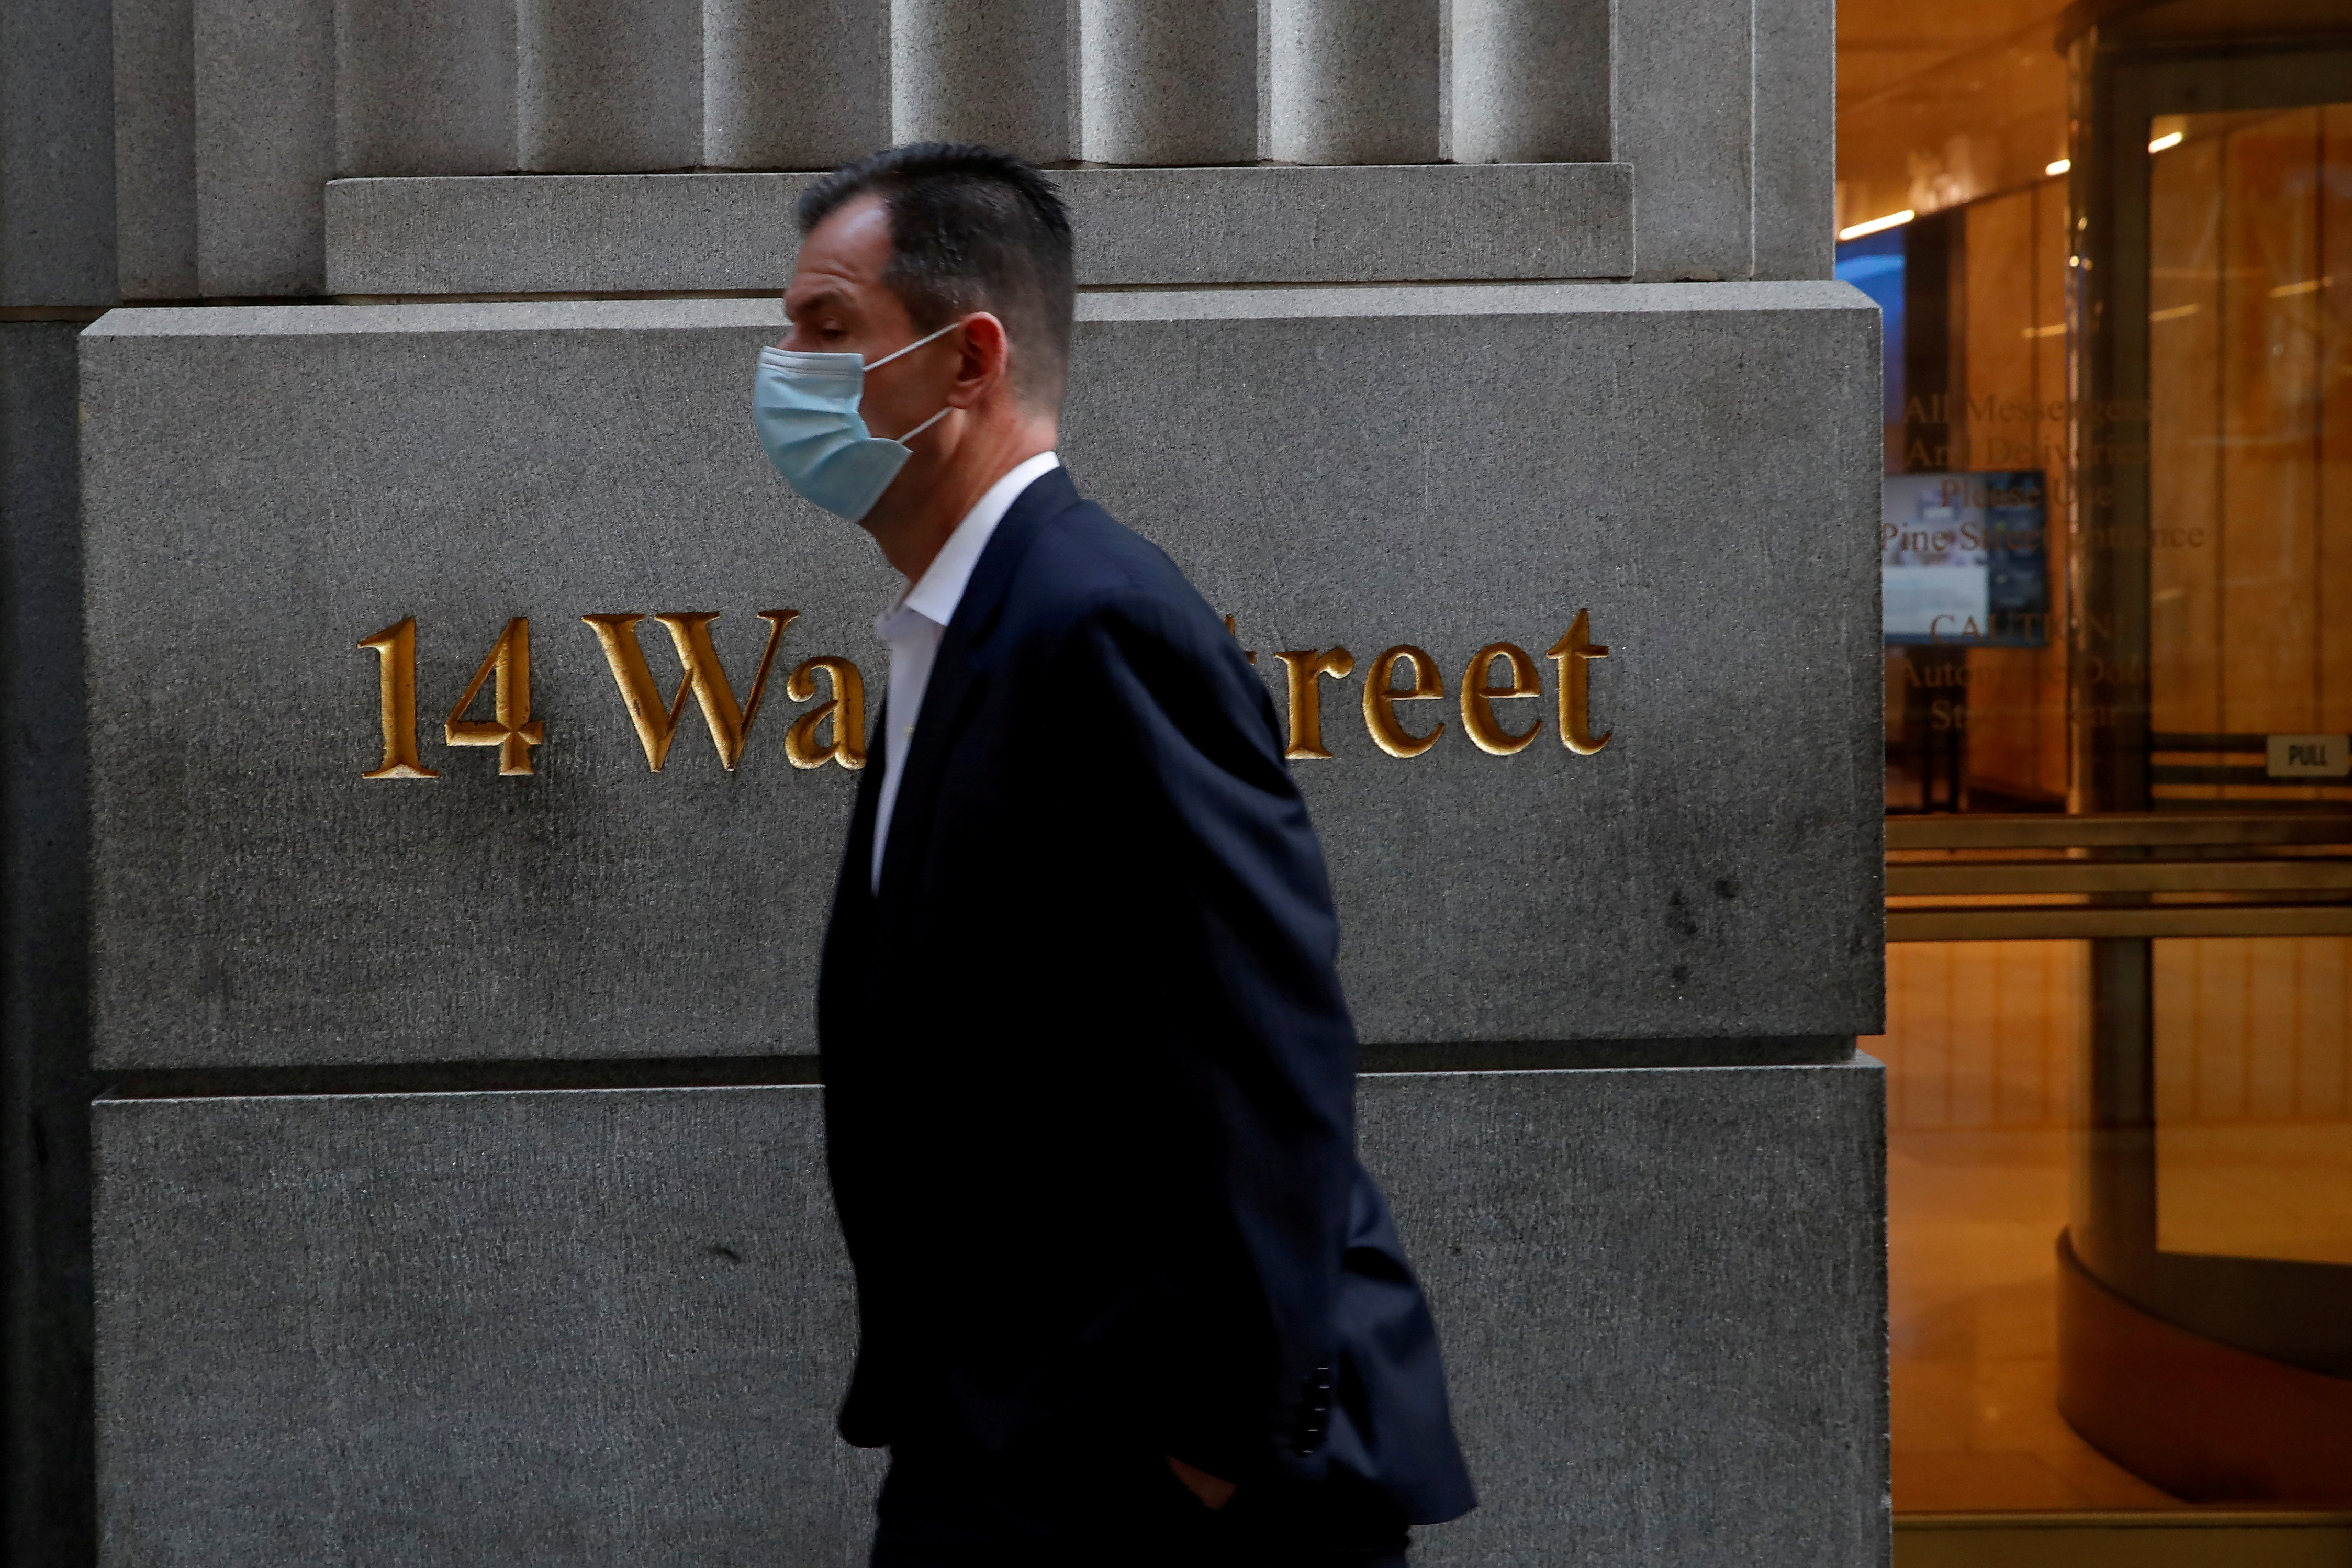 A man wearing a protective face mask walks by 14 Wall Street in the financial district of New York, U.S., November 19, 2020. REUTERS/Shannon Stapleton